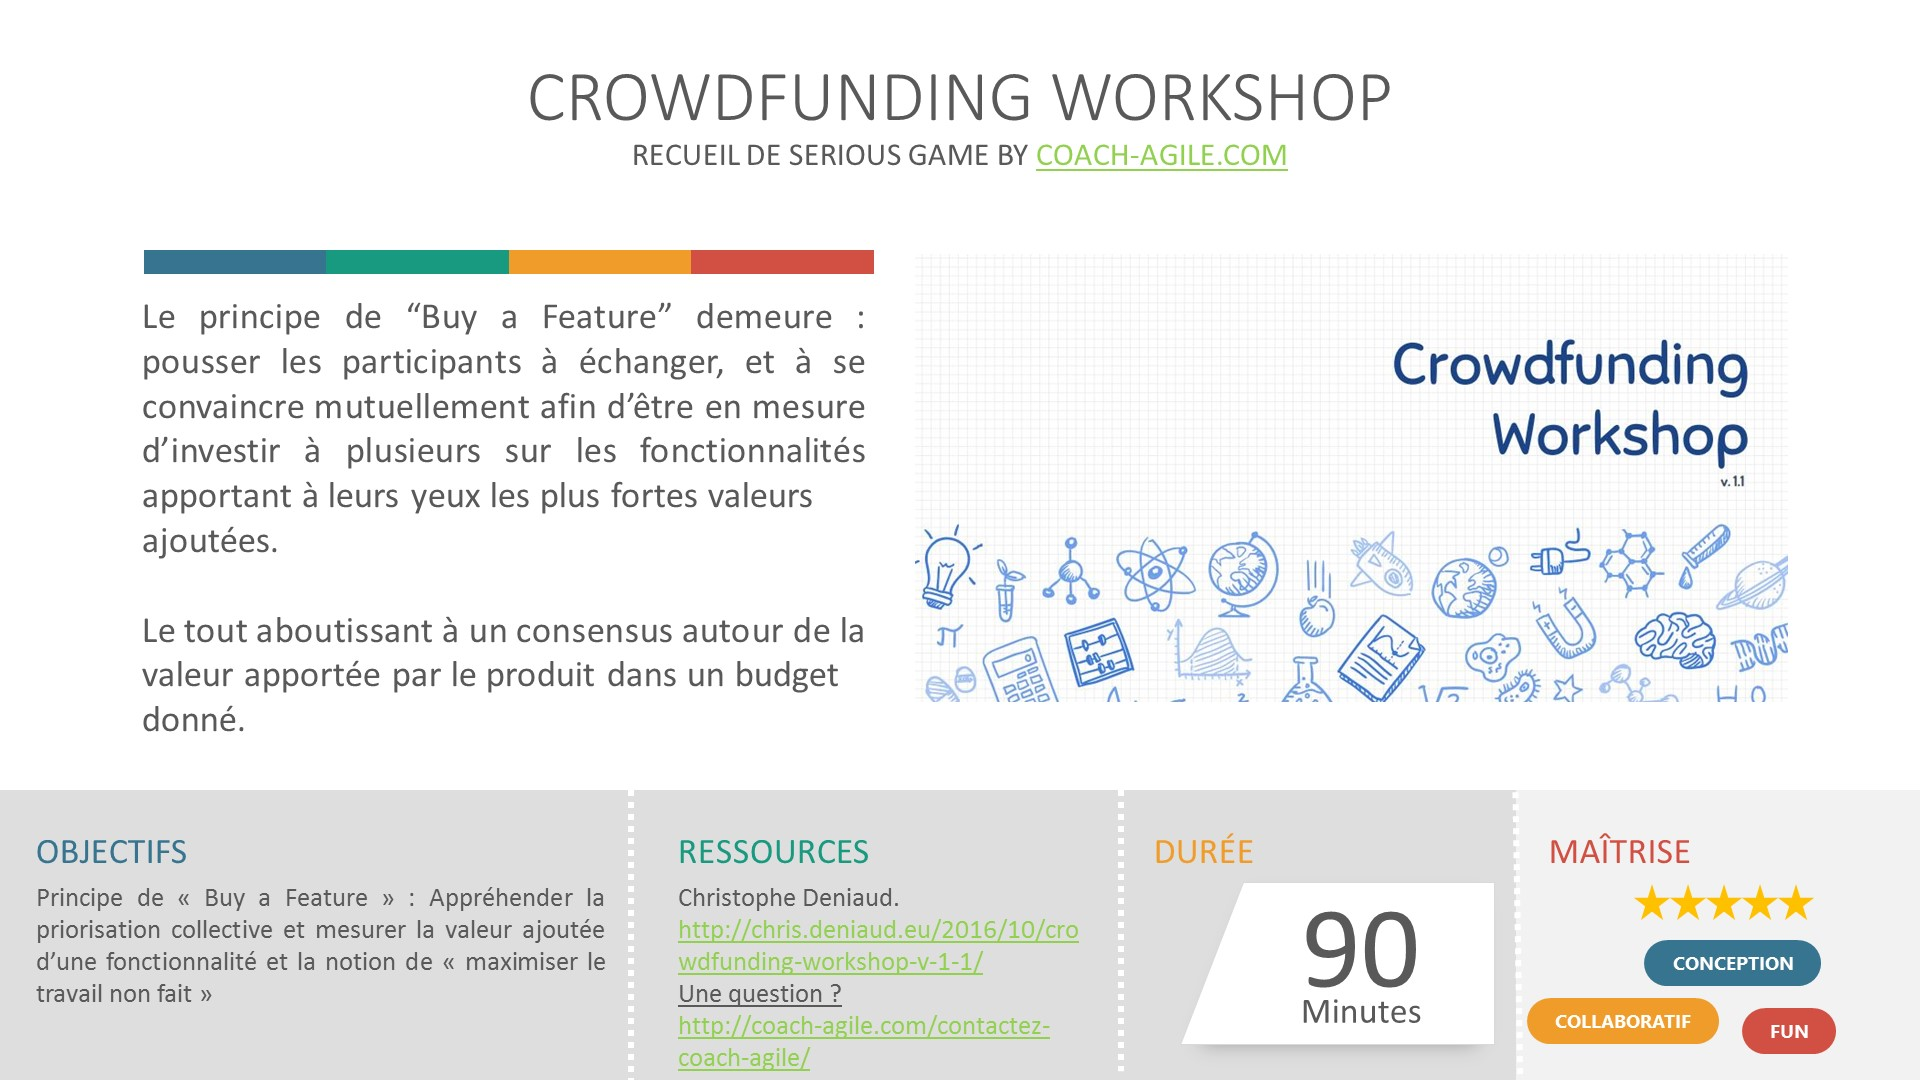 SERIOUS GAME : CROWDFUNDING WORKSHOP